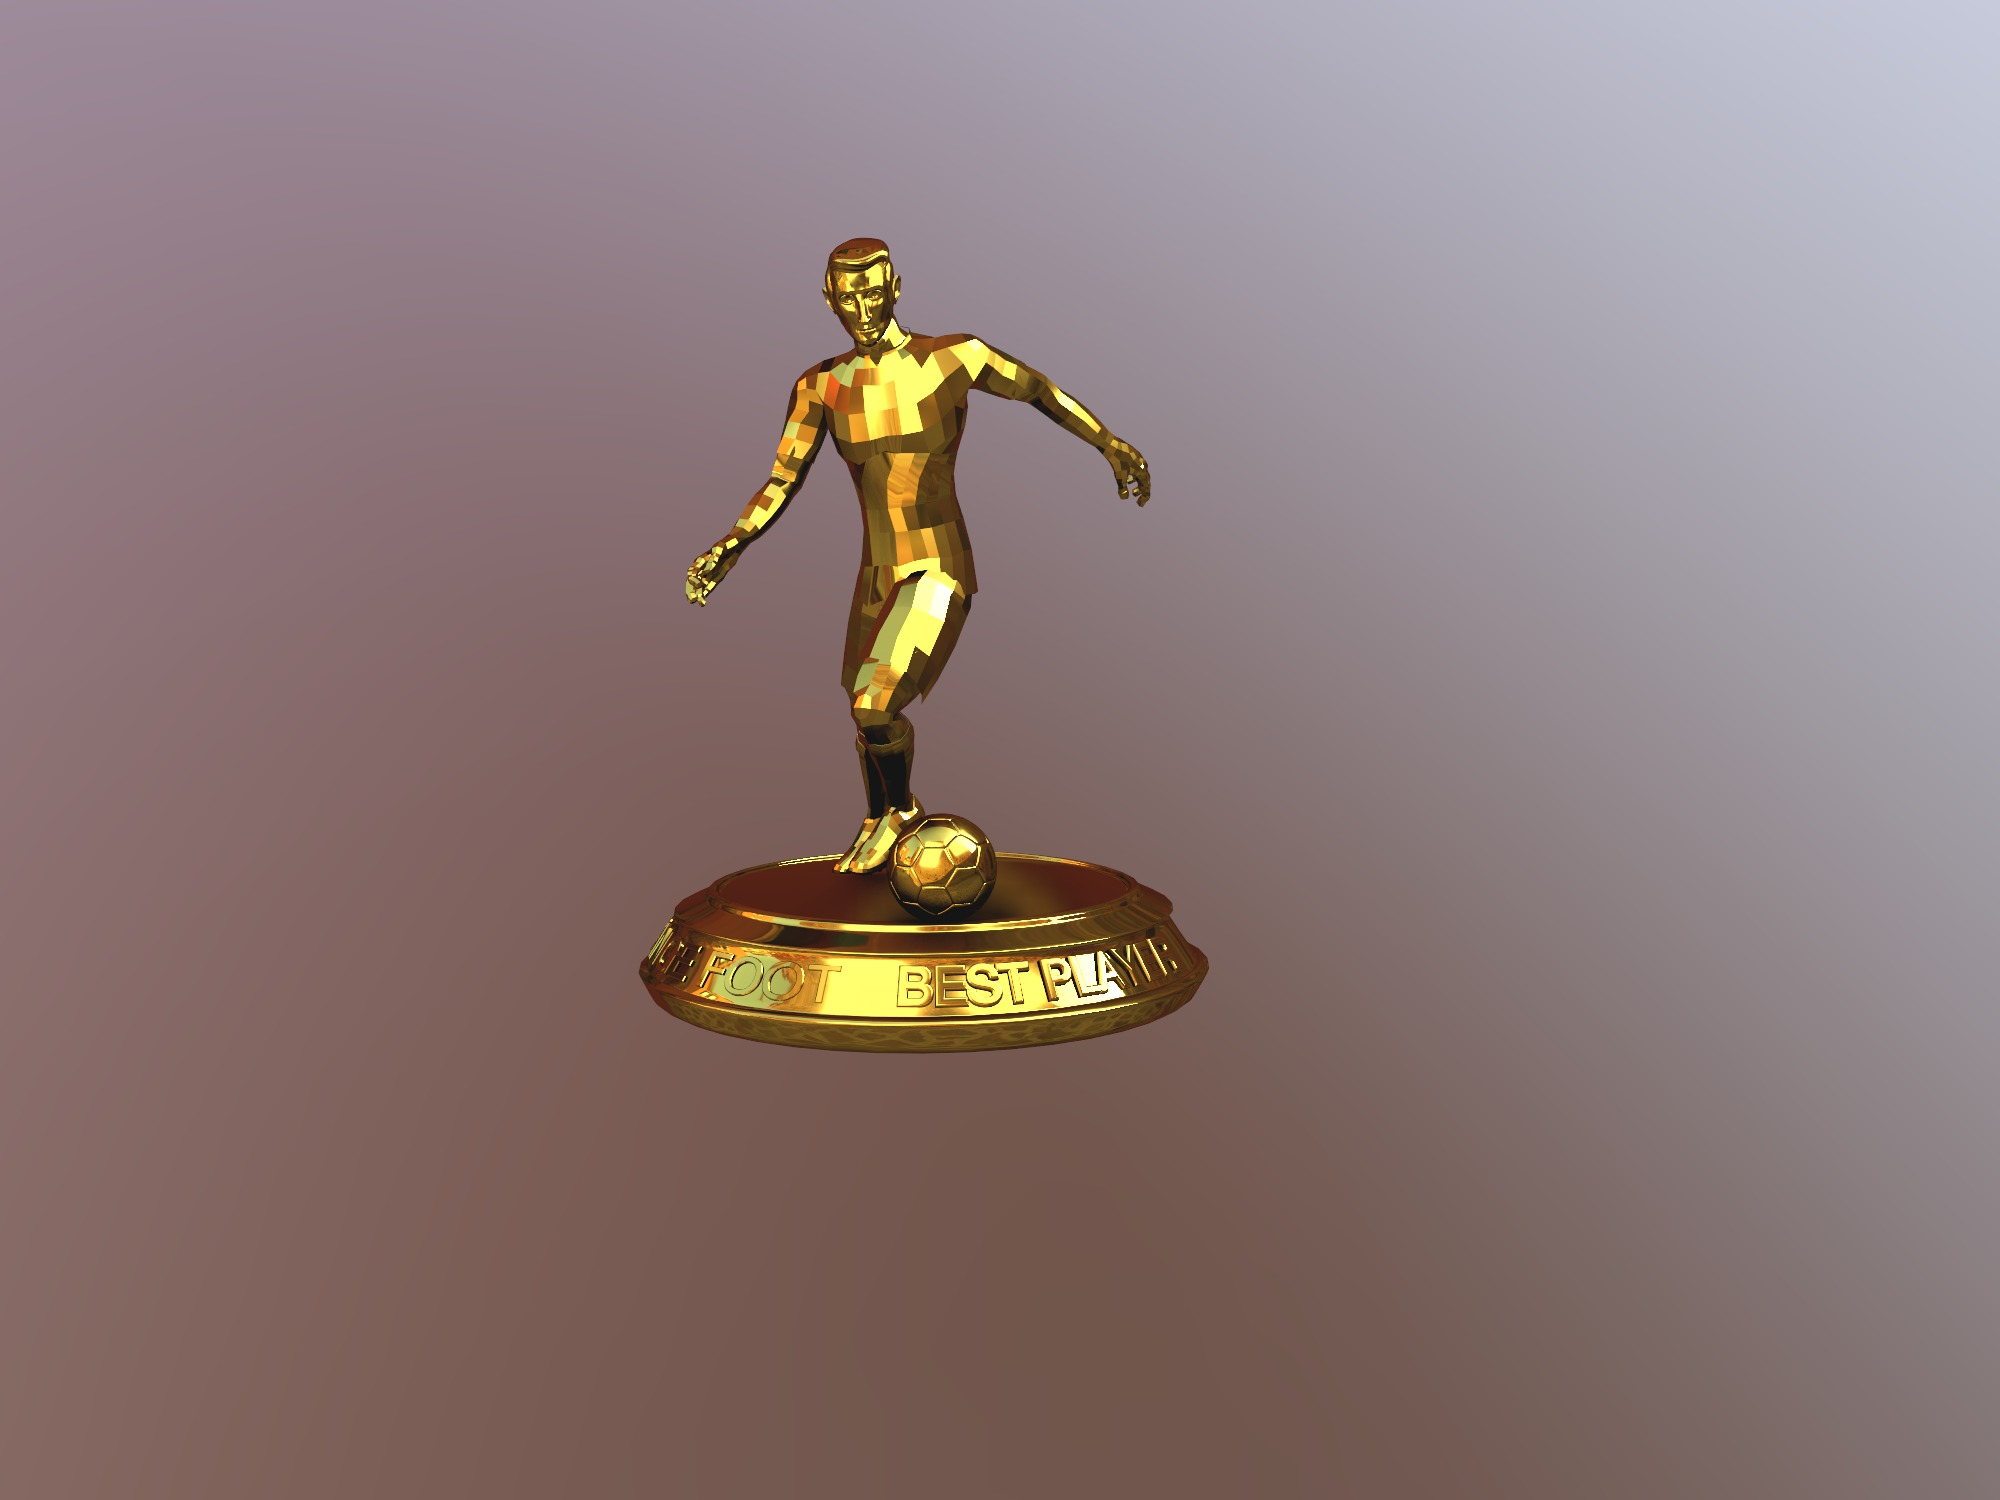 Orange Best Player Trophy - 3D design by Moussa Mohamed Amine on Dec 13, 2018